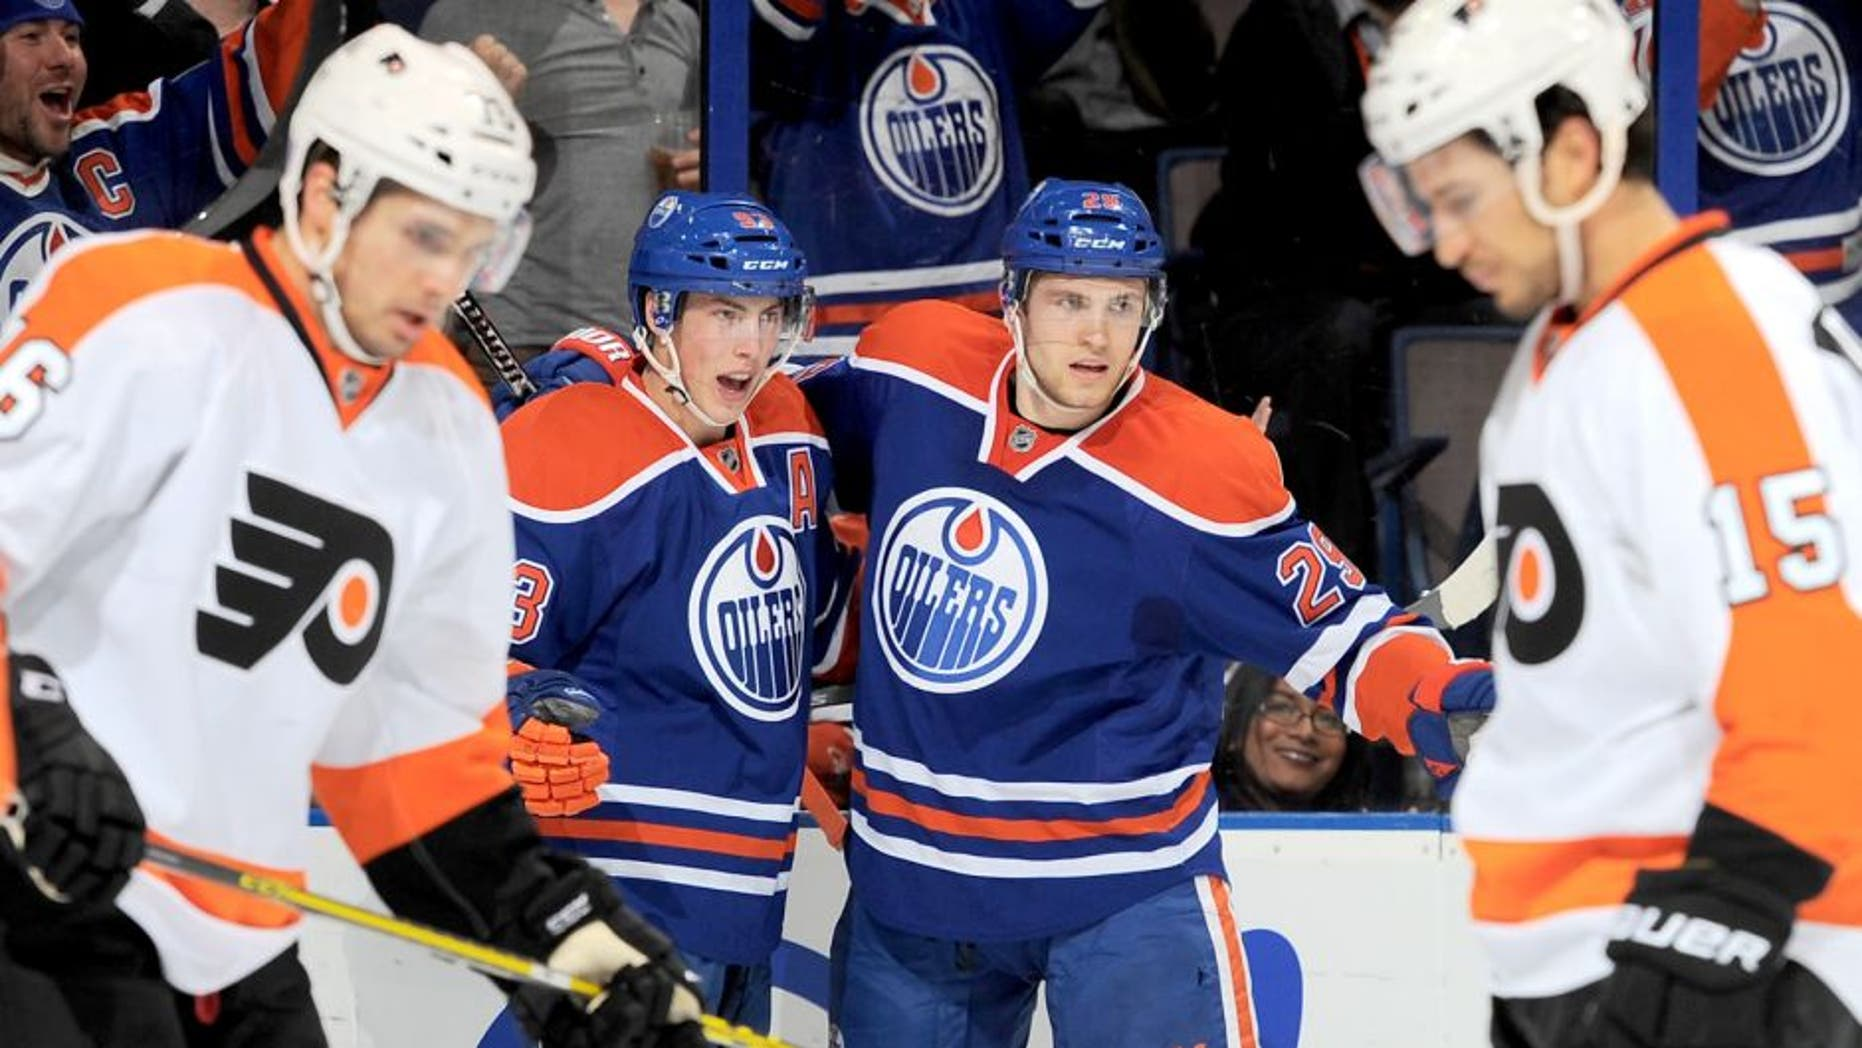 EDMONTON, AB - NOVEMBER 3: Ryan Nugent-Hopkins #93 and Leon Draisaitl #29 of the Edmonton Oilers celebrate after a goal during a game against the Philadelphia Flyers on November 3, 2015 at Rexall Place in Edmonton, Alberta, Canada. (Photo by Andy Devlin/NHLI via Getty Images)